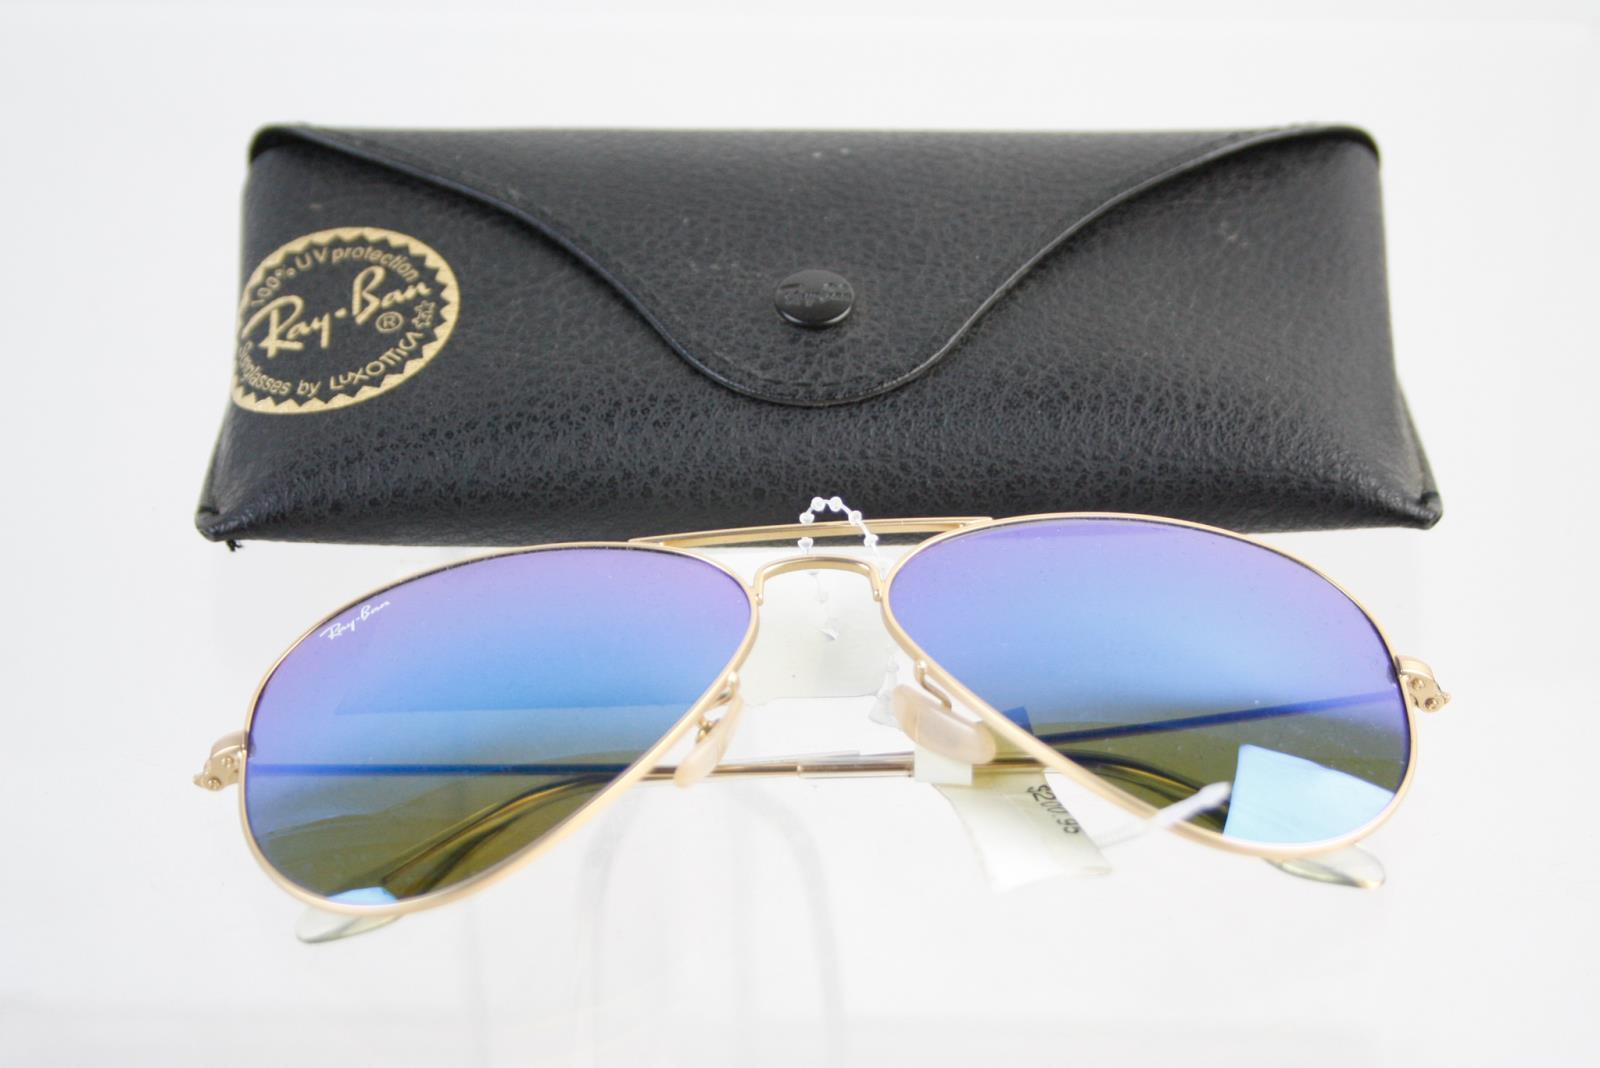 Primary image for RAY BAN Aviator SUNGLASSES with case - NWT - Large Metal - made in ITALY